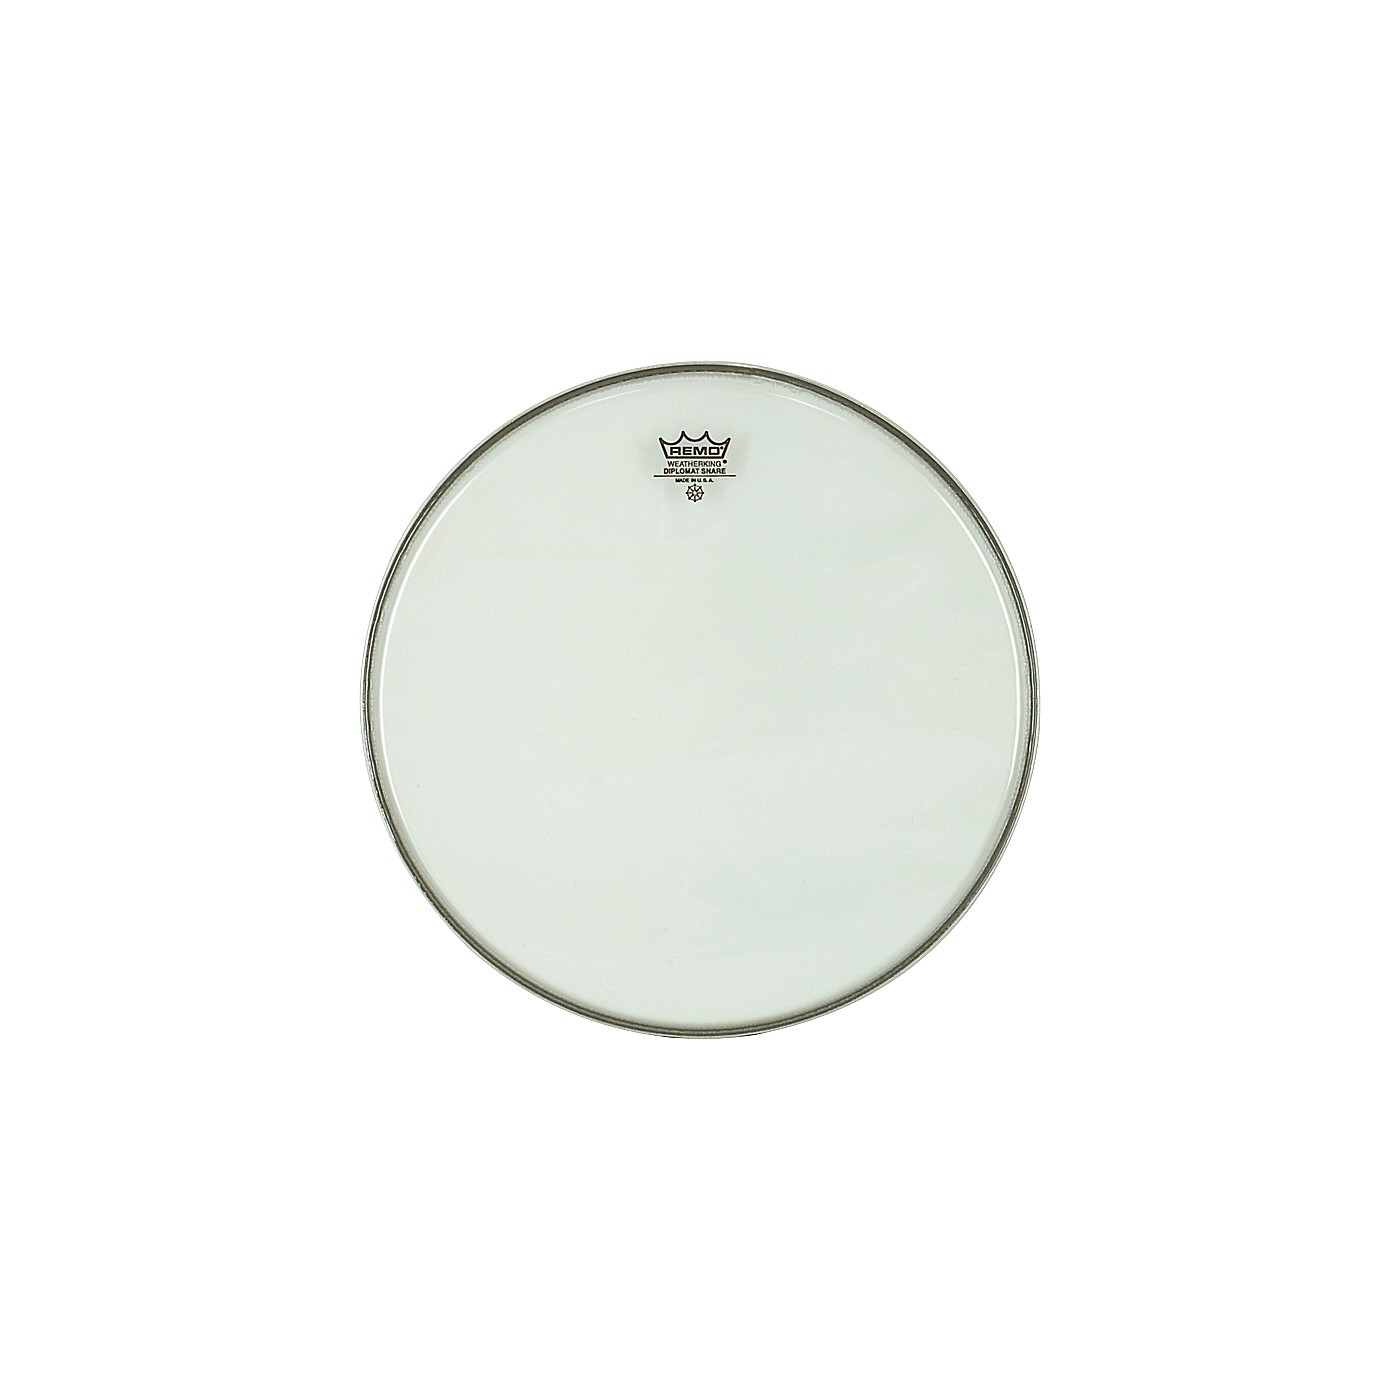 Remo Diplomat Snare Side Head thumbnail